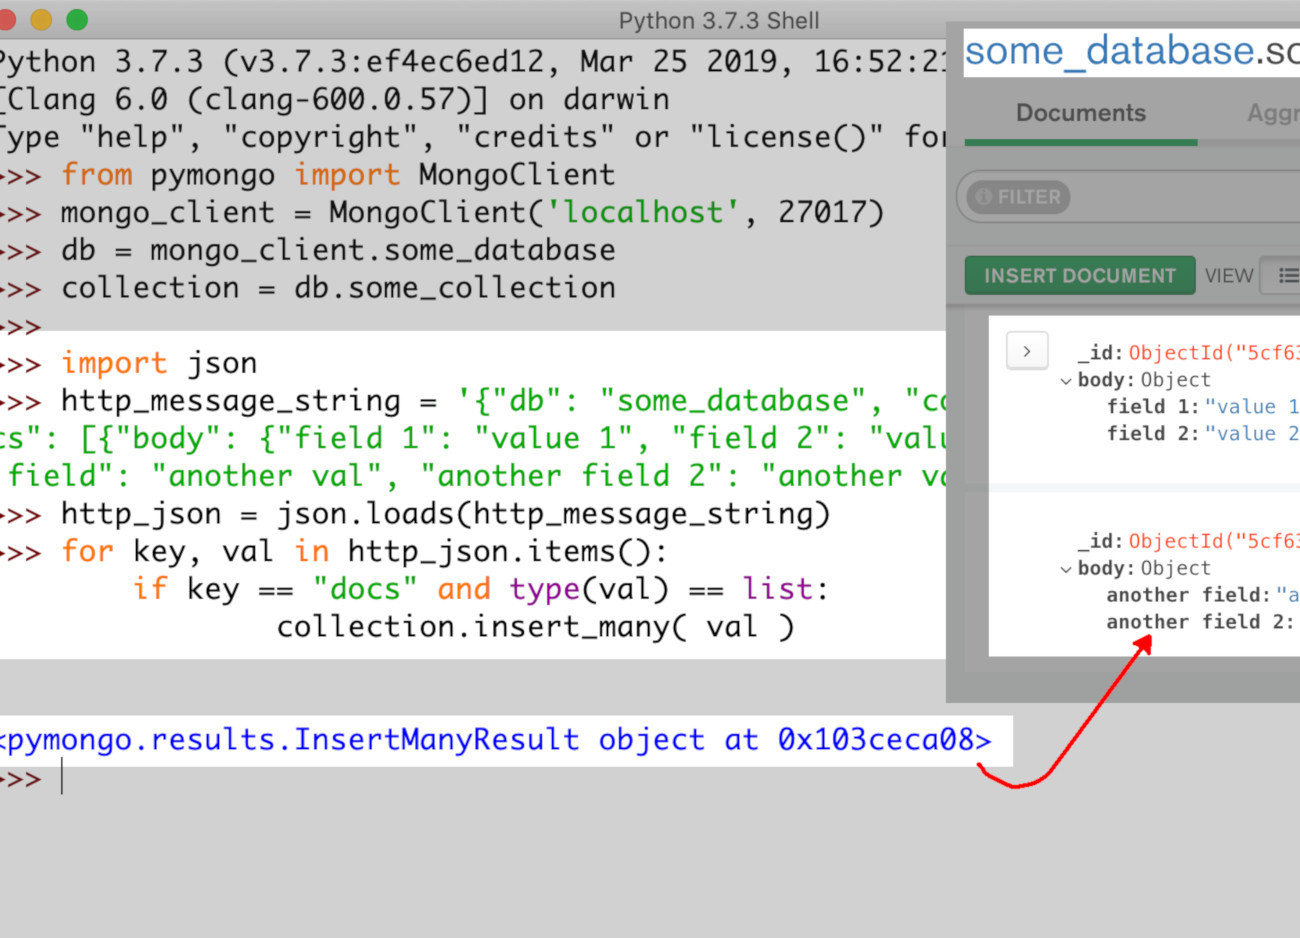 Screenshot of Python IDLE parsing a JSON string and using it to make an API request to MongoDB to insert documents